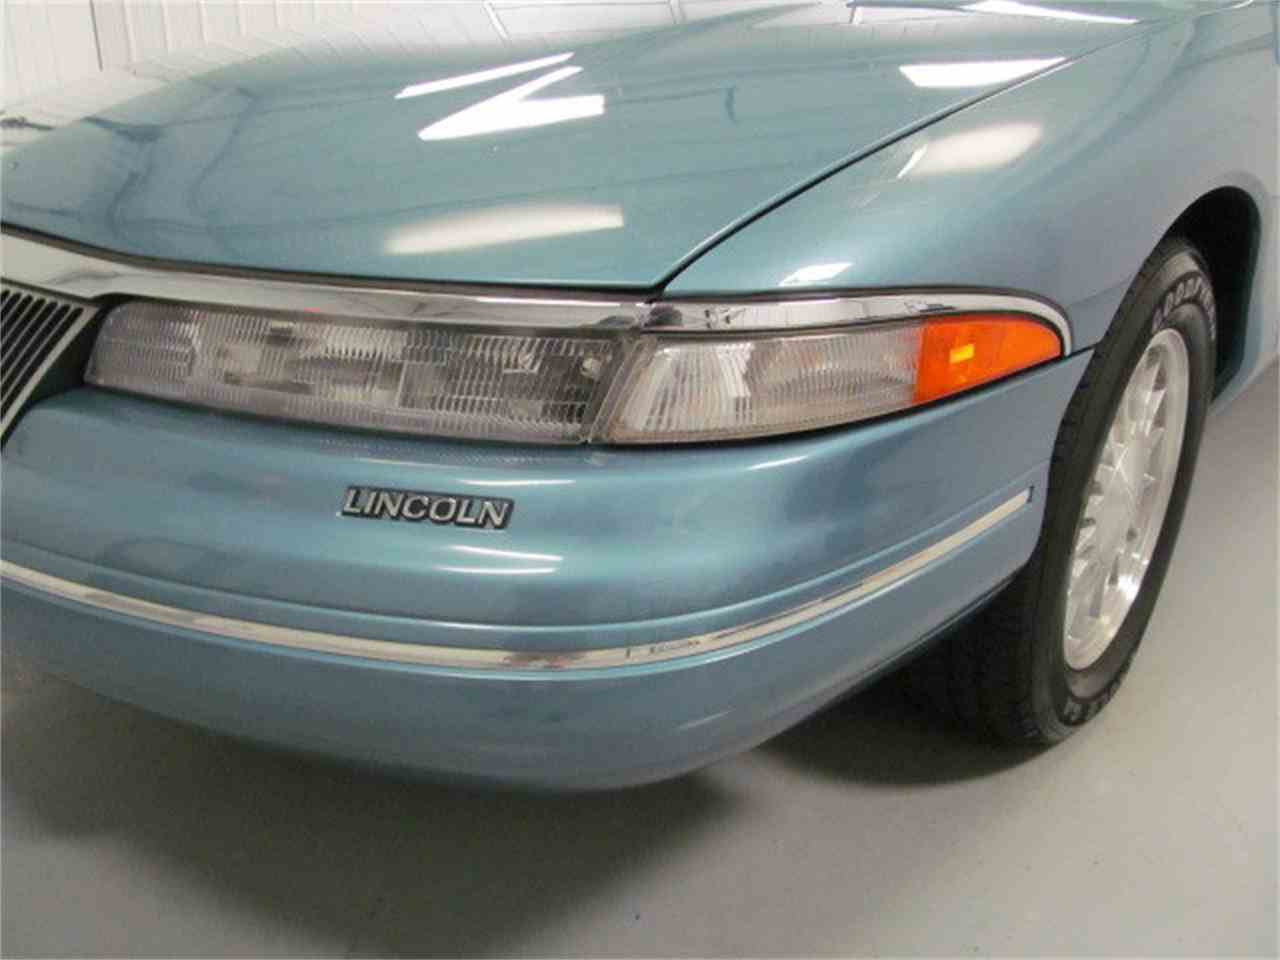 Large Picture of 1993 Lincoln Mark VIII - $9,900.00 - JL9Z